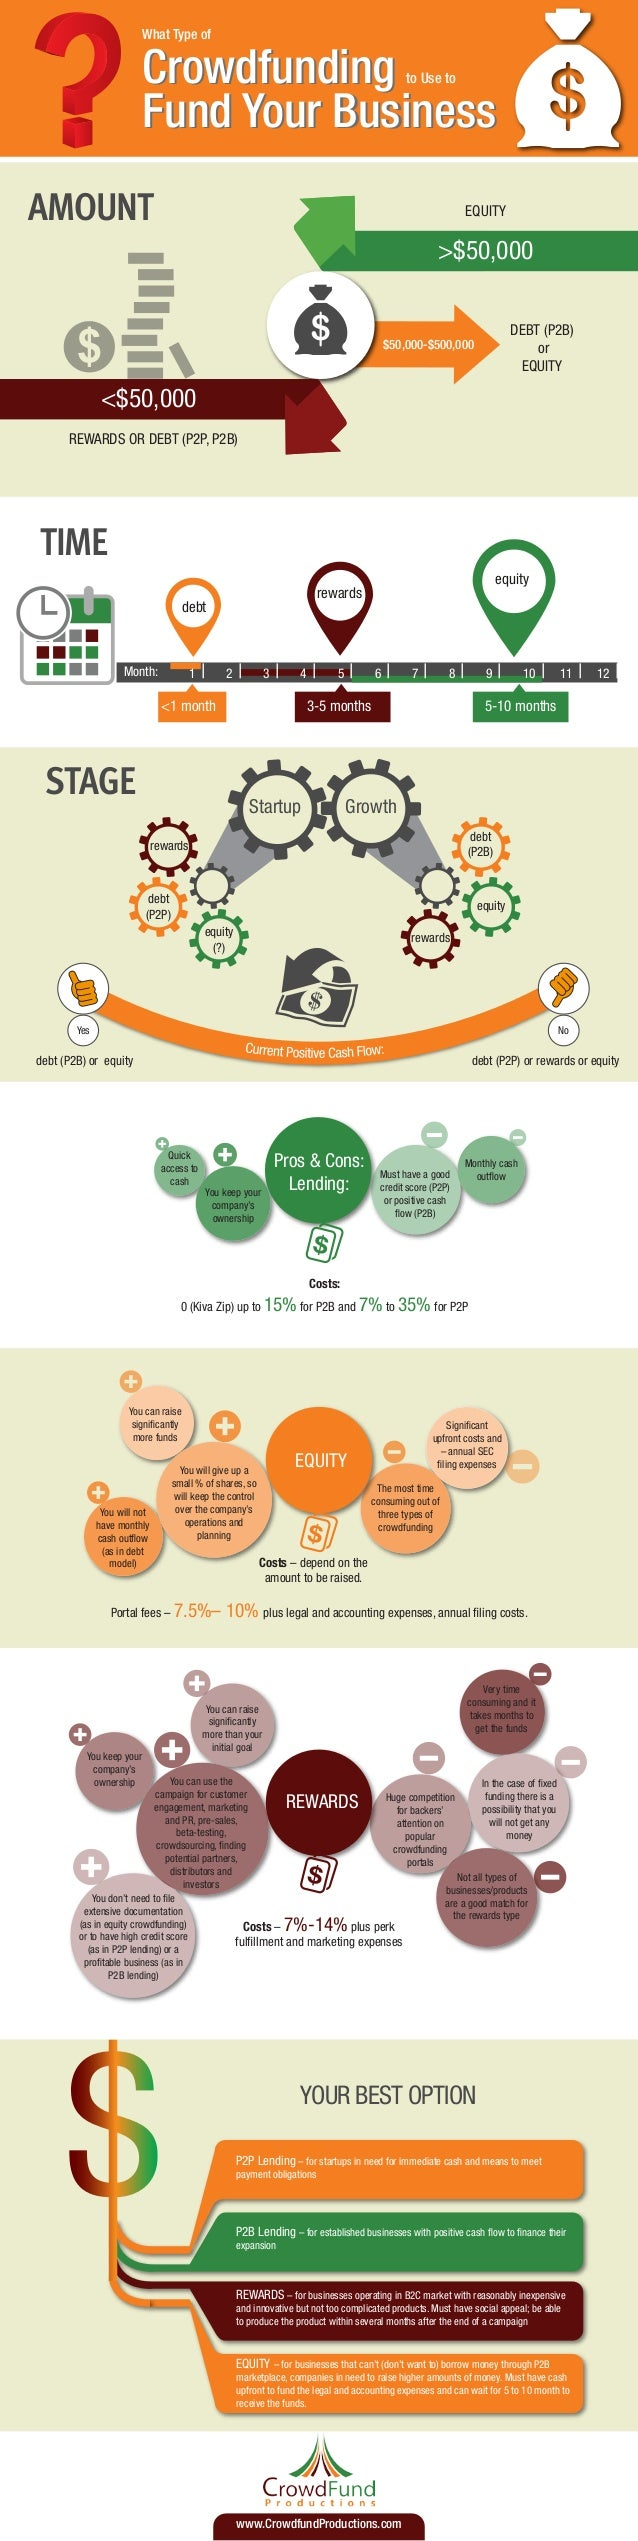 What Type of  Crowdfunding Fund Your Business to Use to  AMOUNT  EQUITY  >$50,000 DEBT (P2B) or EQUITY  $50,000-$500,000  ...